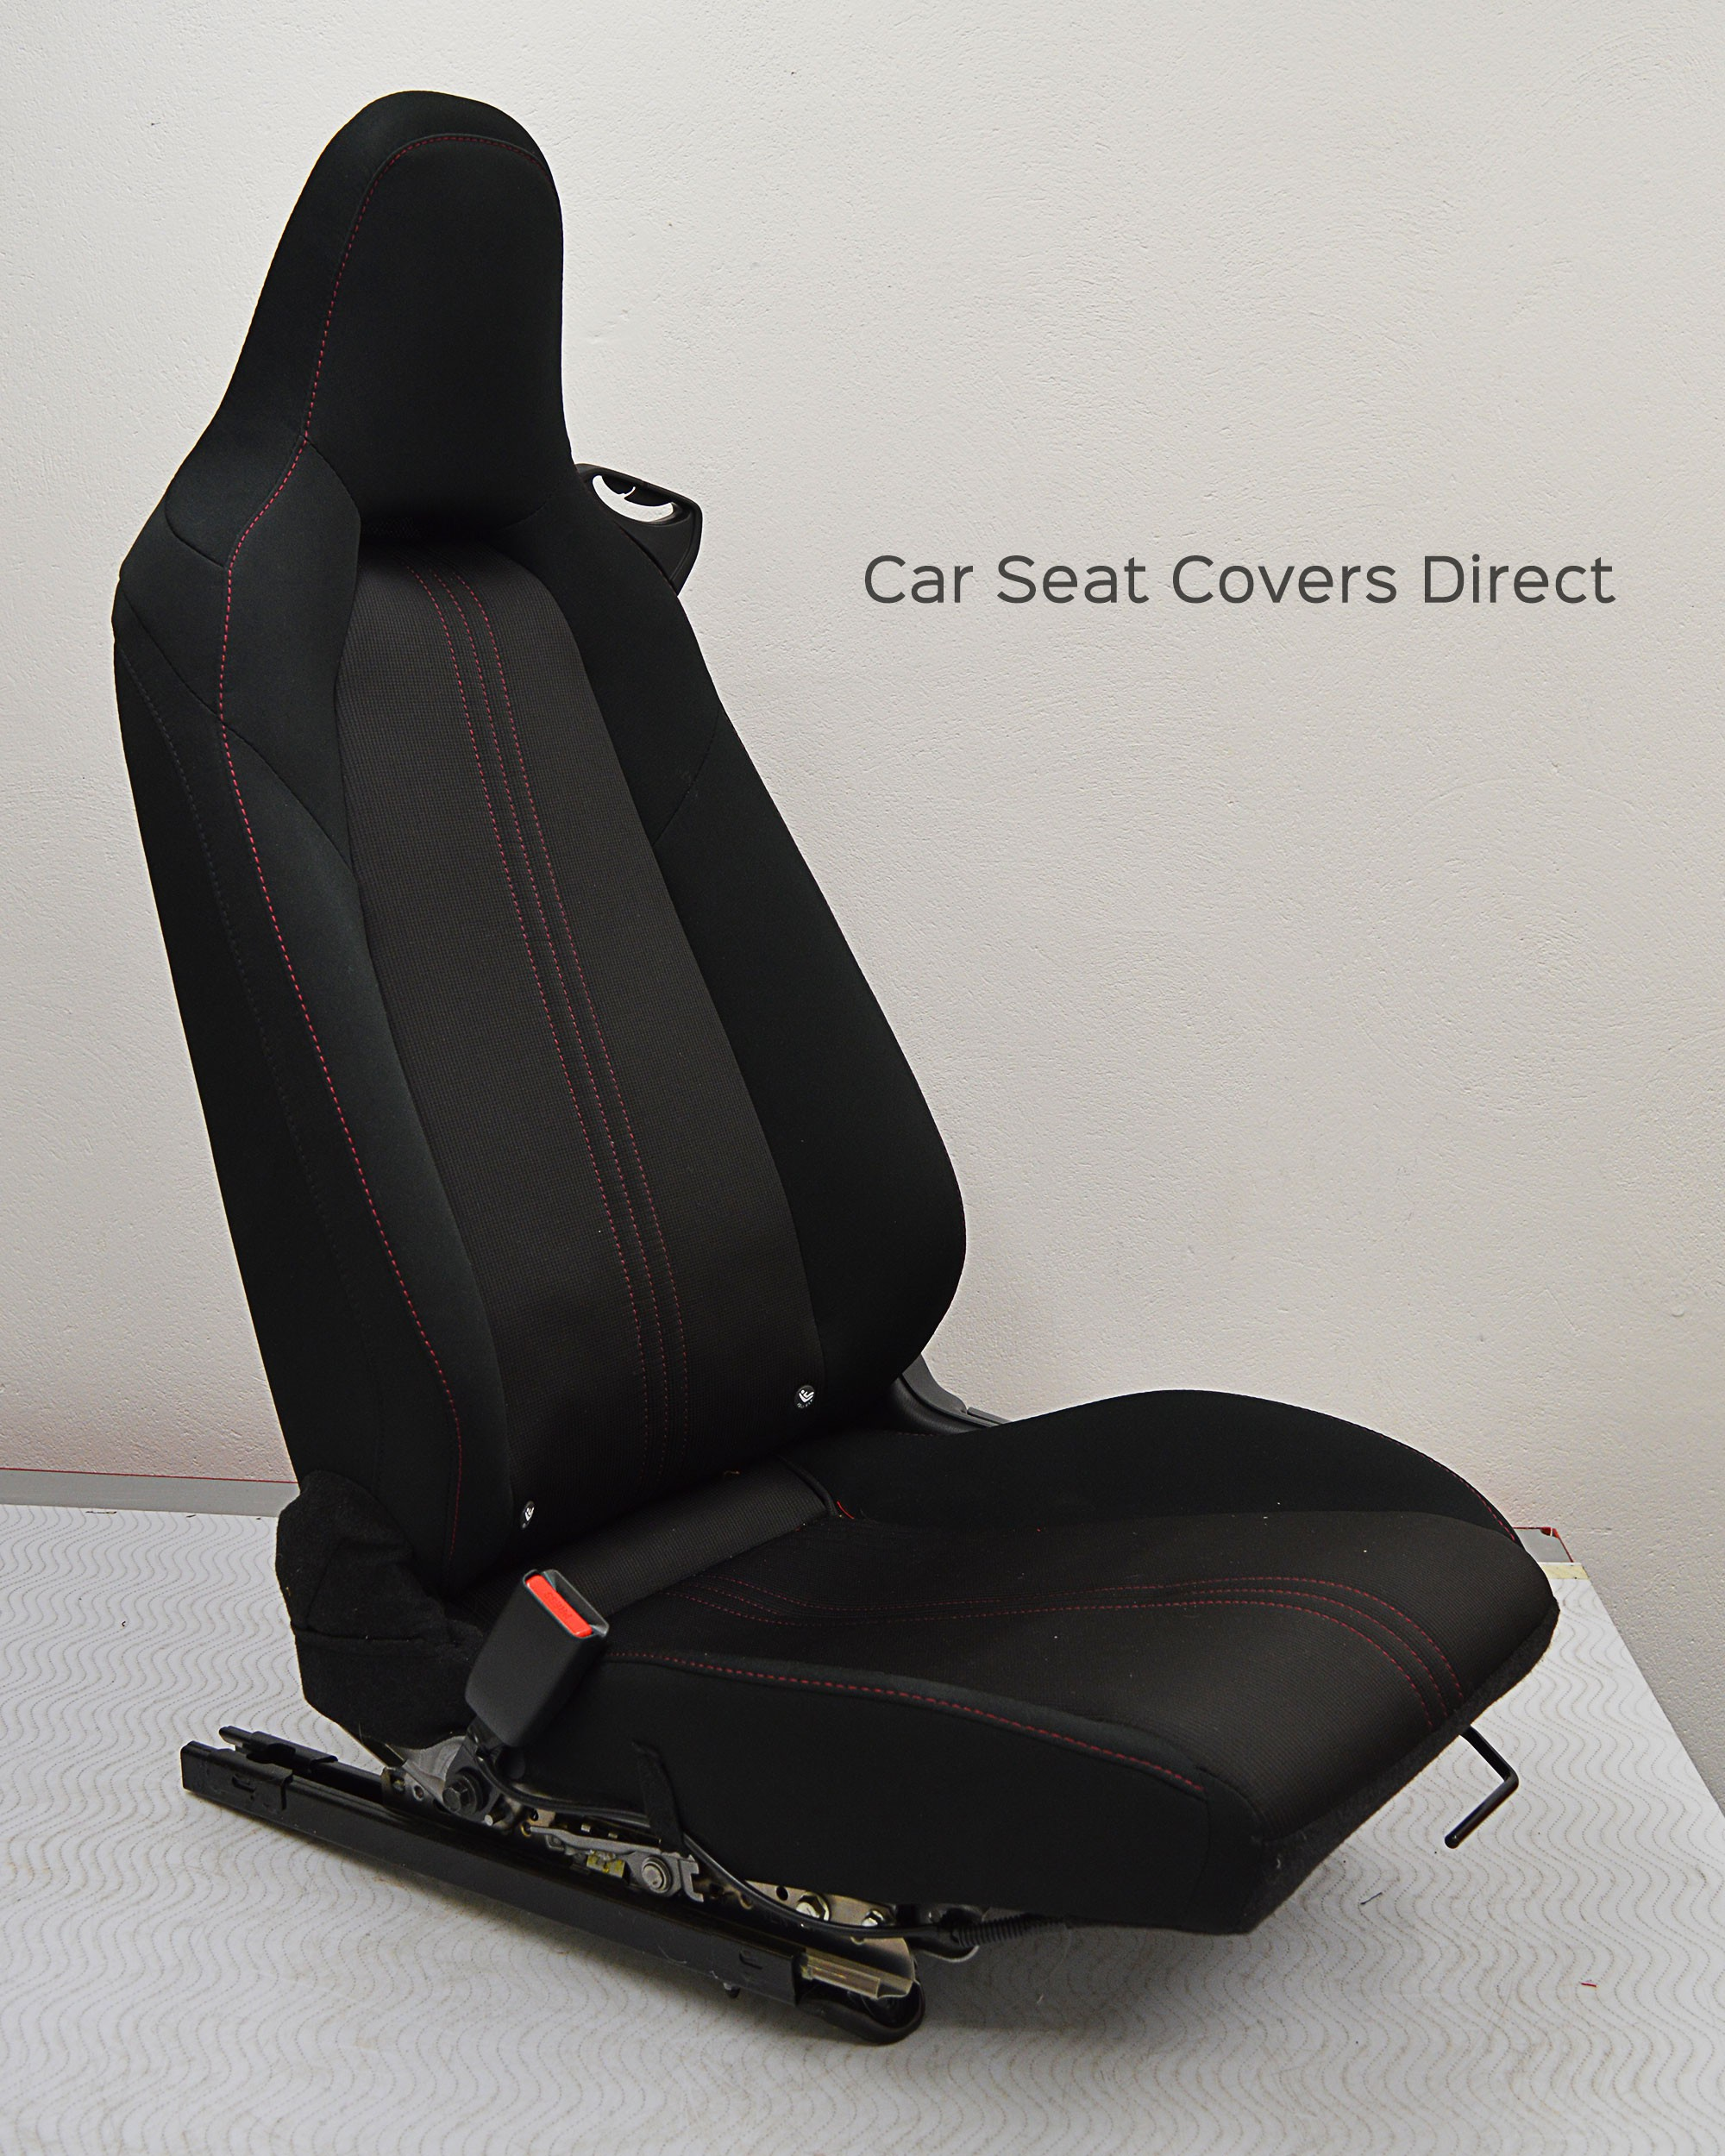 Mazda Mx5 Tailored Seat Covers 4th Generation 2015 Present